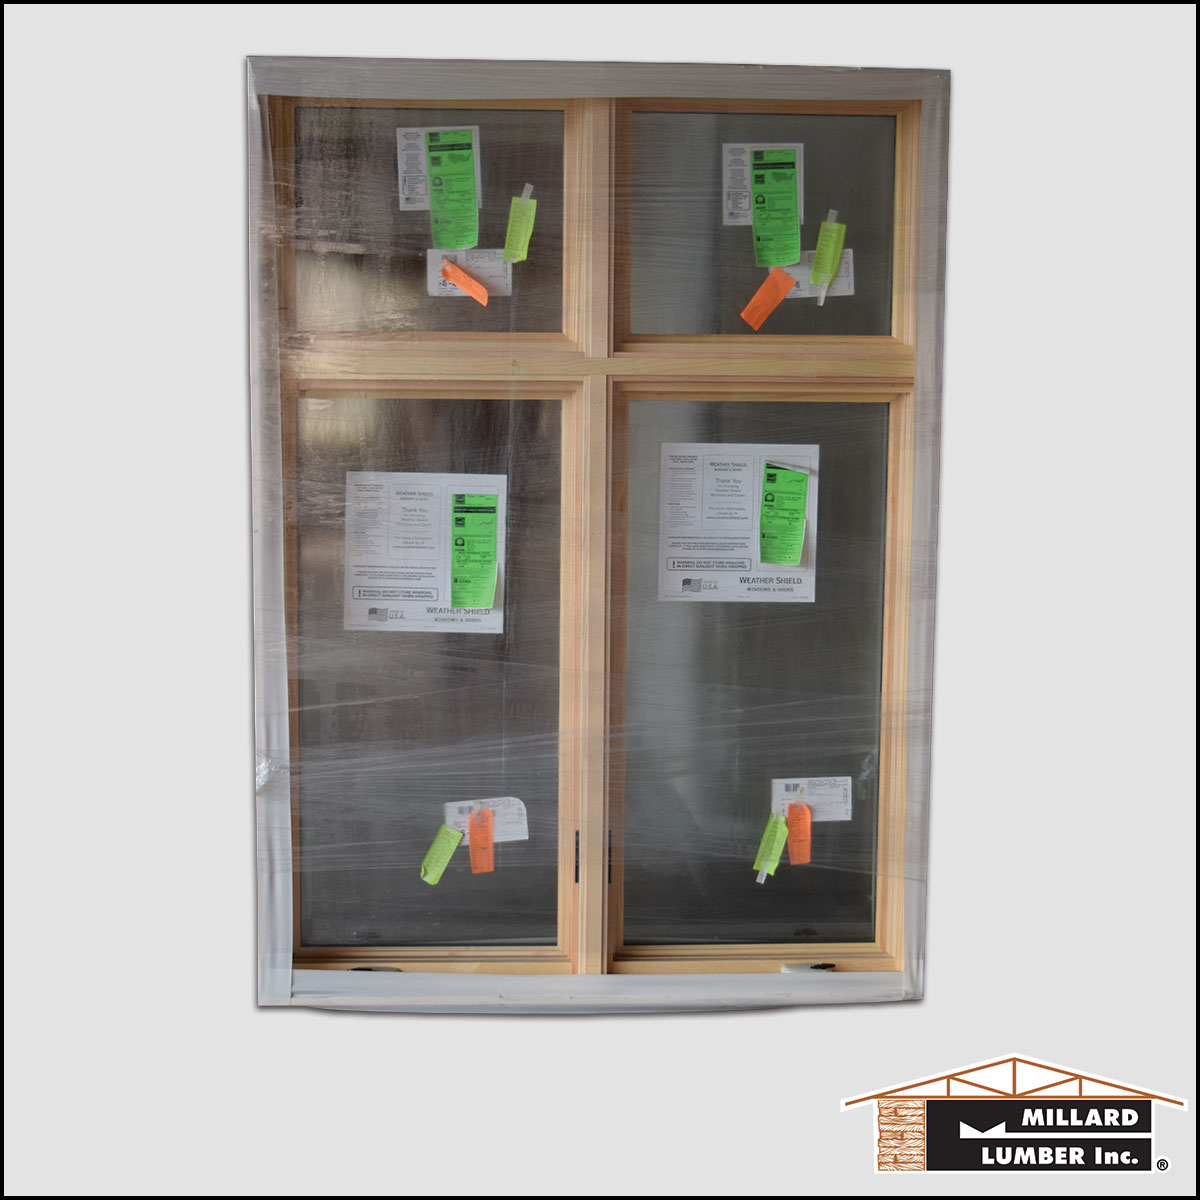 Clearance Products More Than Lumber Millard Lumber